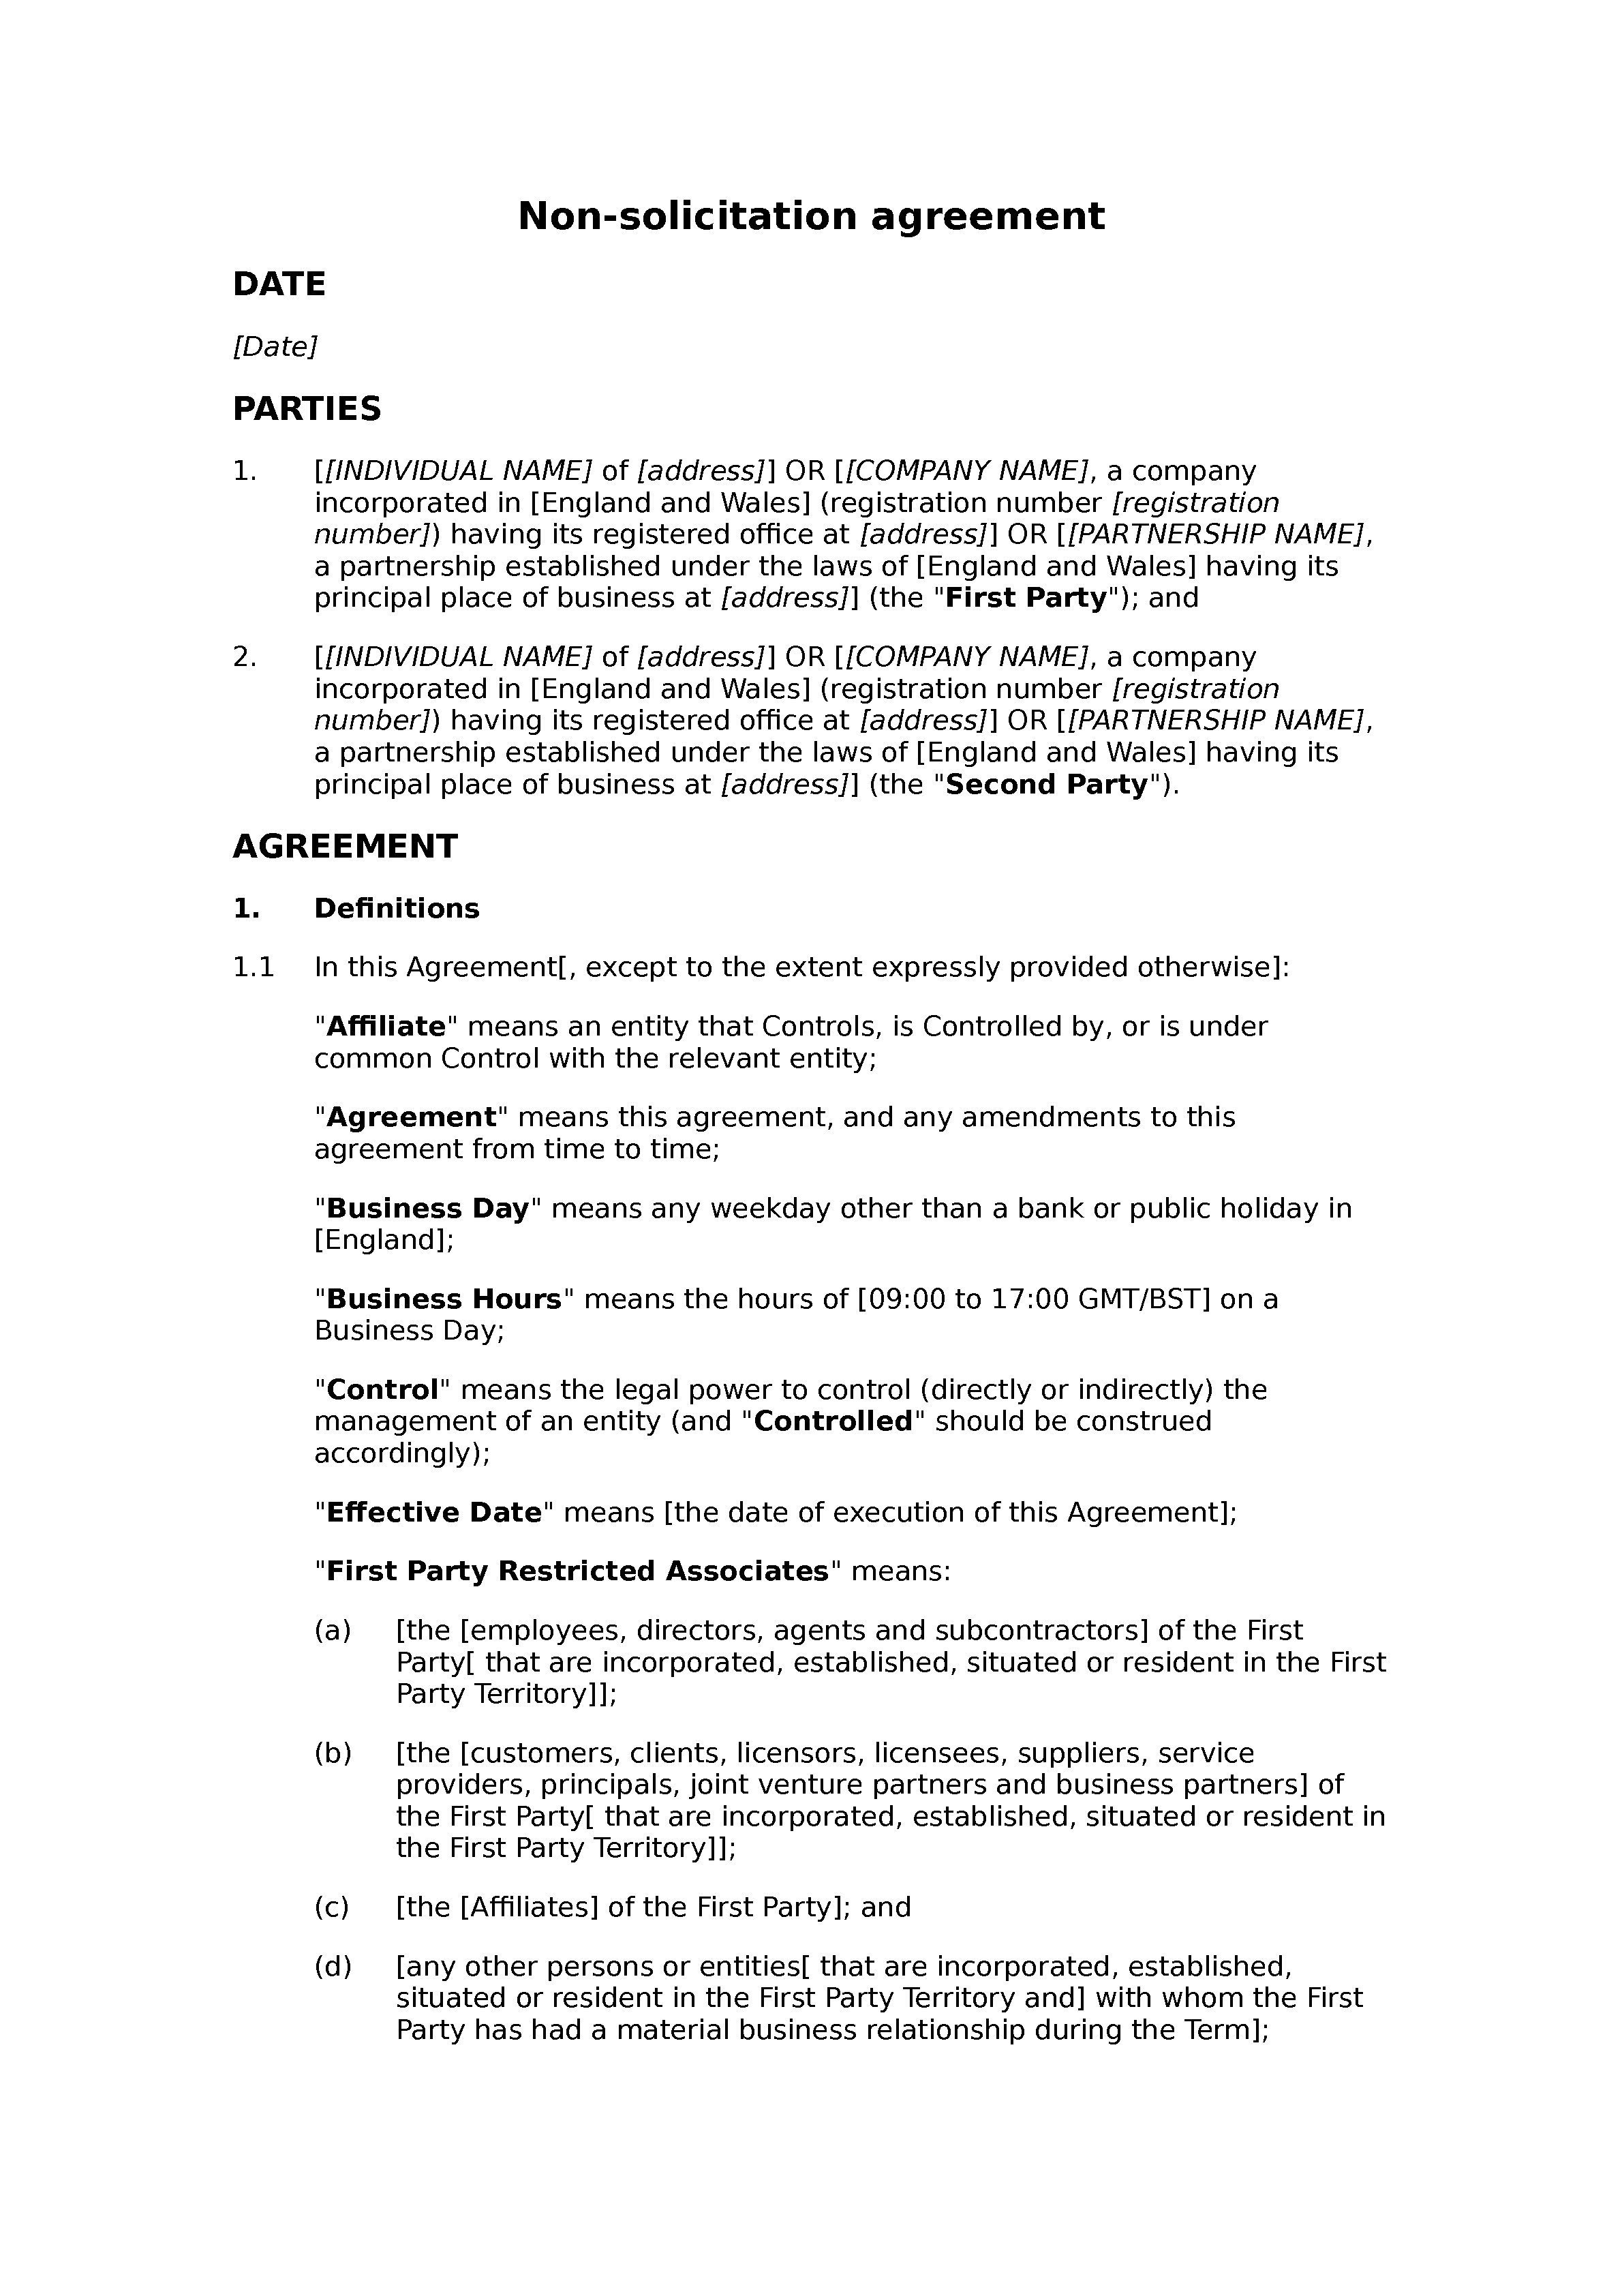 Non Solicitation Agreement Mutual Docular